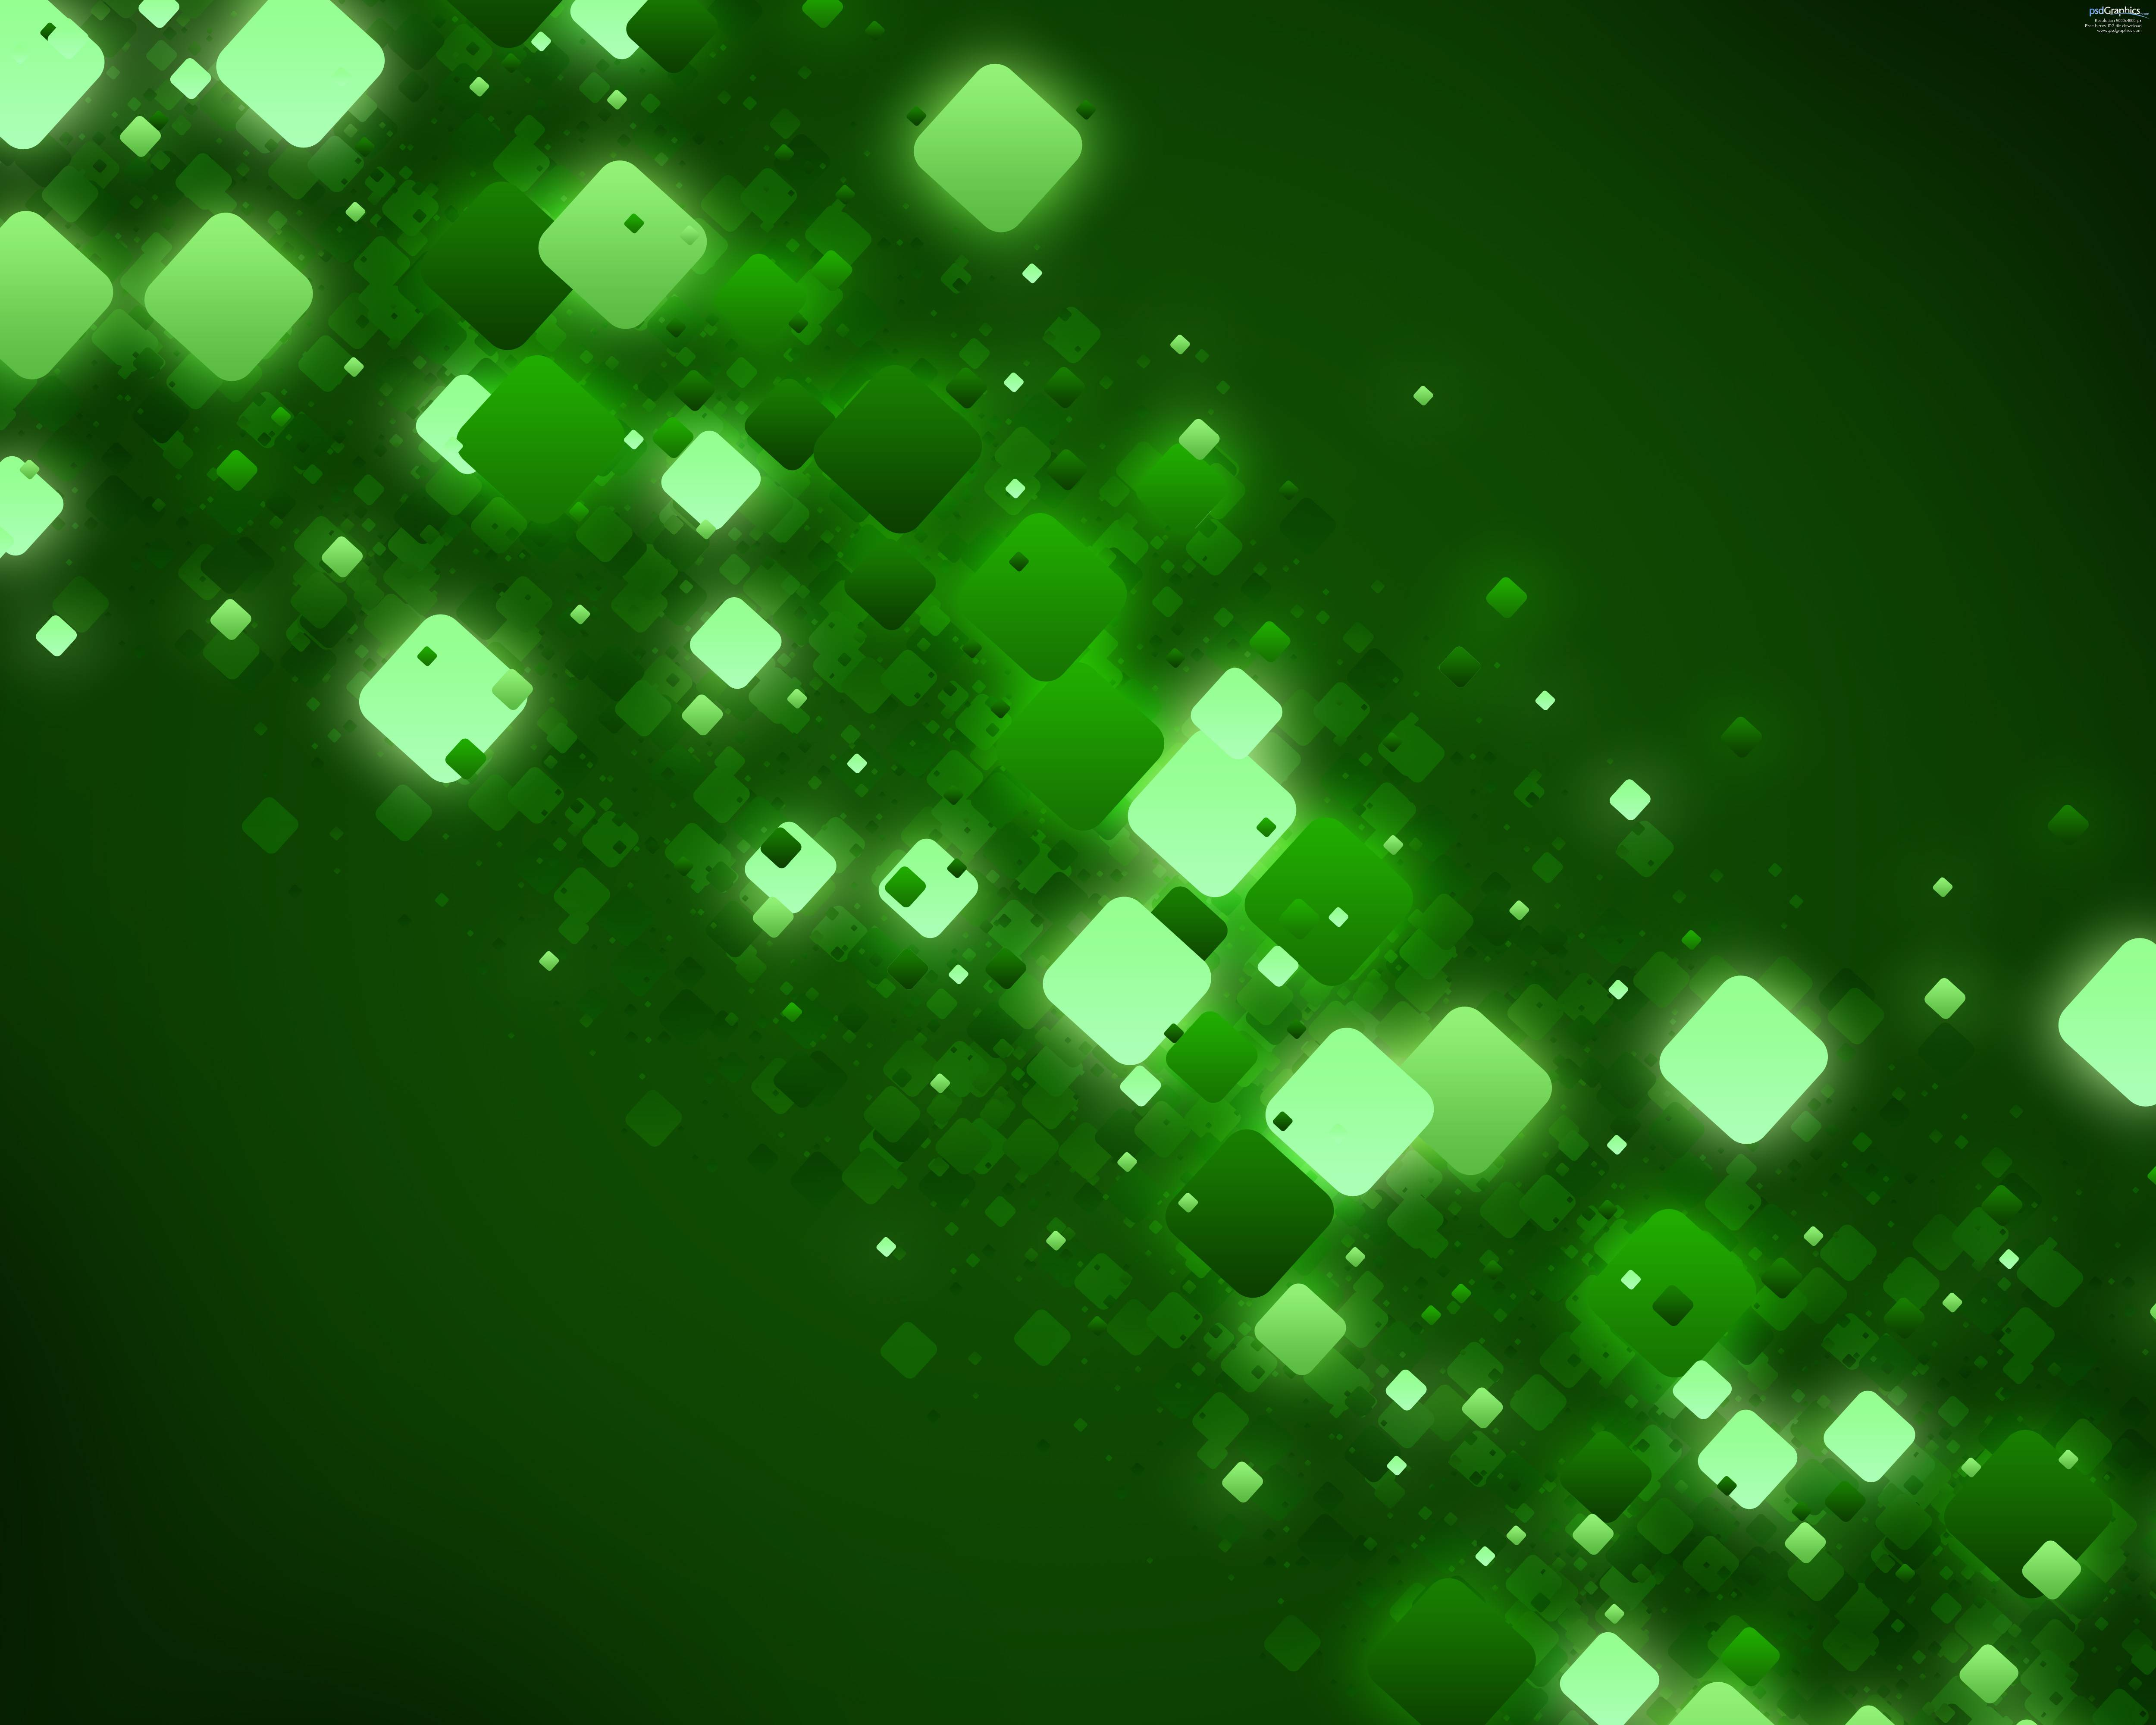 Green Backgrounds 19 19810 HD Wallpapers